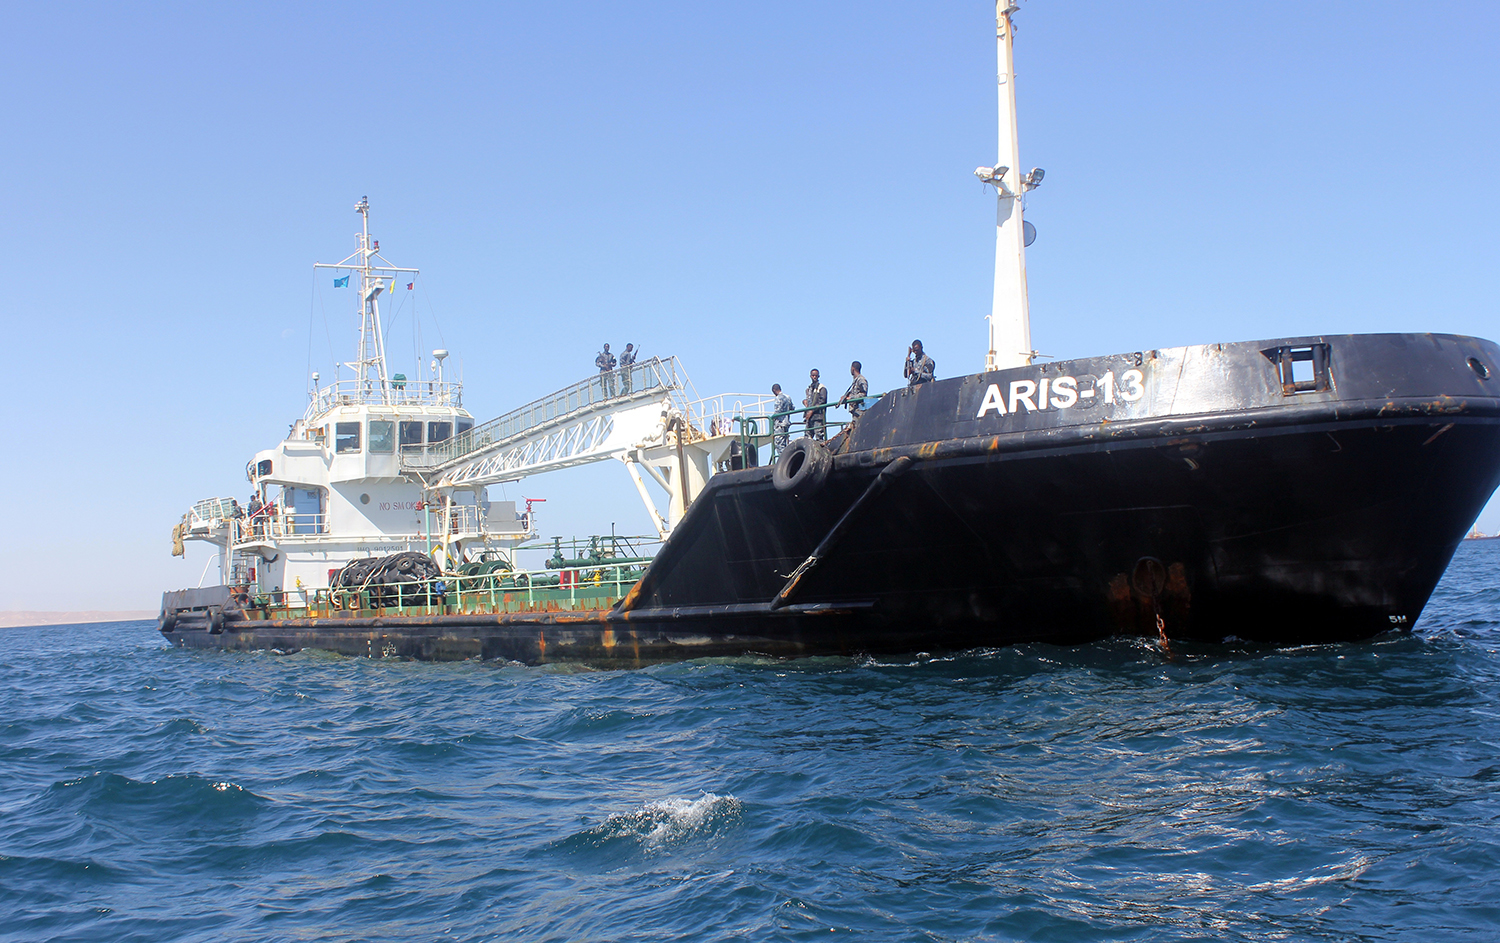 BOSASSO 2017-03-19 Maritime police are seen aboard oil tanker Aris-13, which was released by pirates, as it sails to dock on the shores of the Gulf of Aden in the city of Bosasso, northern Somalia's semi-autonomous region of Puntland, March 19, 2017. REUTERS/Abdiqani Hassan FOR EDITORIAL USE ONLY. NO RESALES. NO ARCHIVES. TPX IMAGES OF THE DAY Photo: / REUTERS / TT / kod 72000